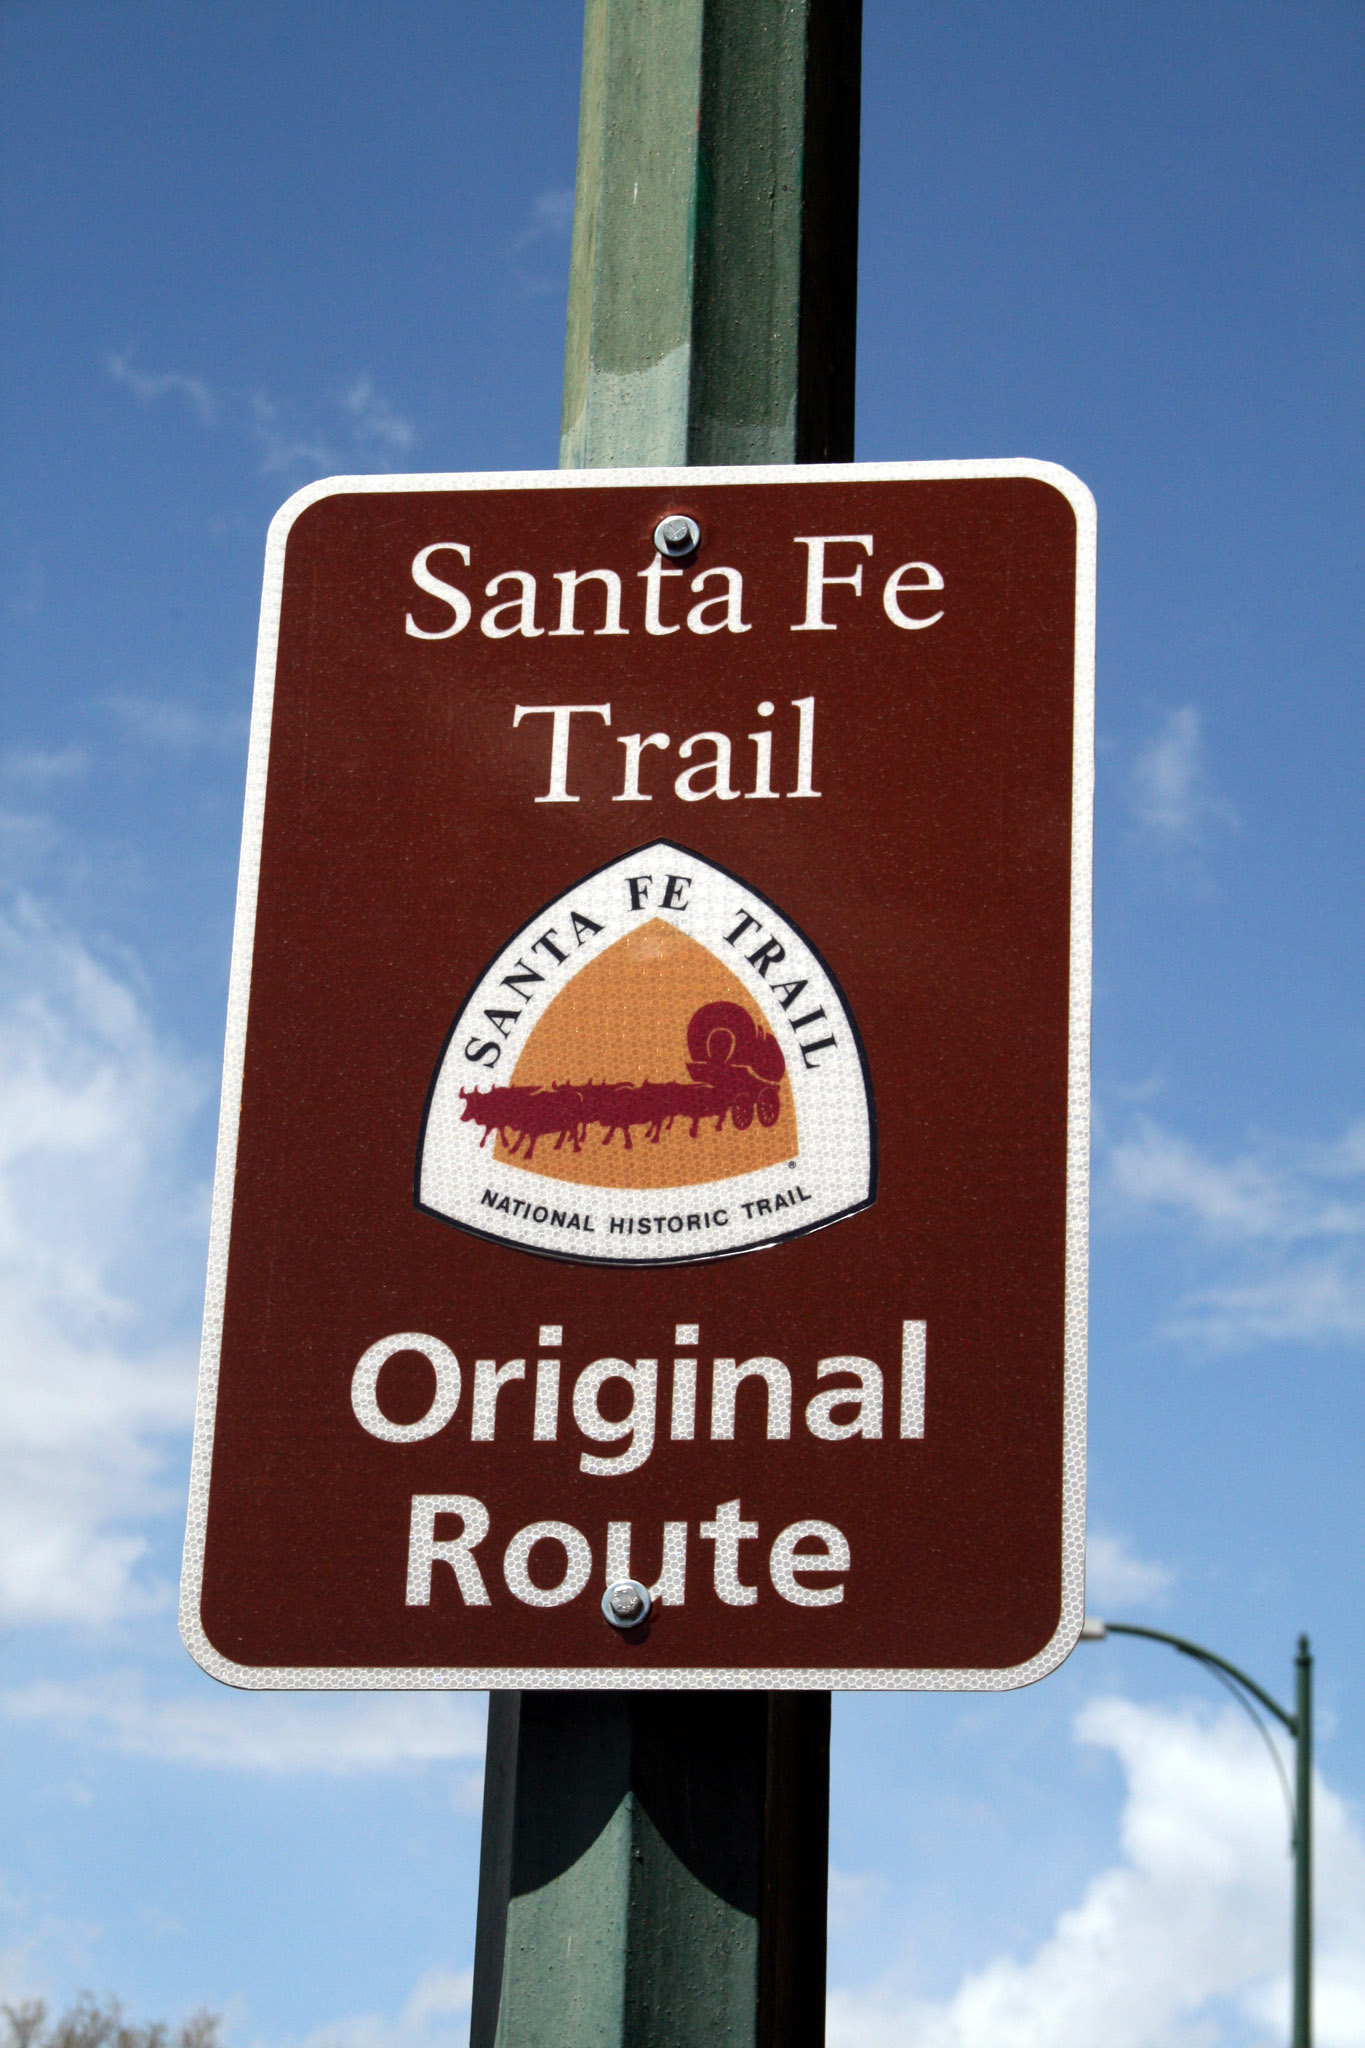 Santa Fe Trail Original Route